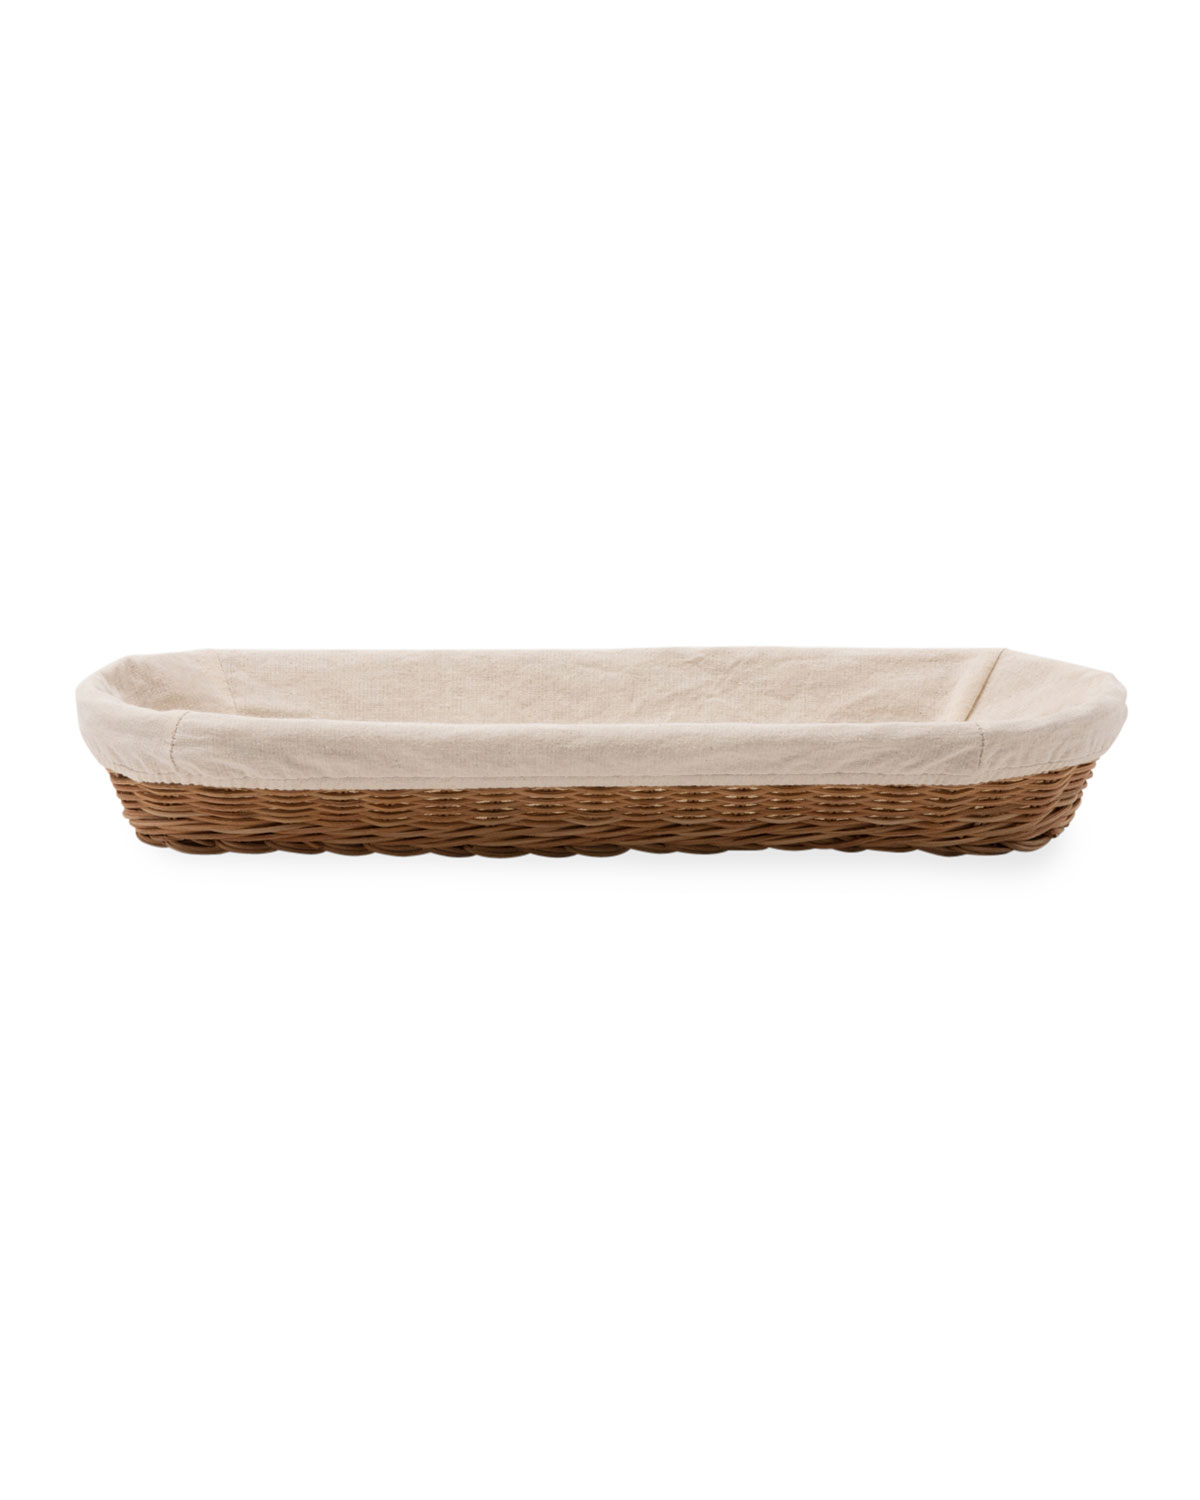 Blue Pheasant Lasata Large Oblong Rattan Tray with Liner